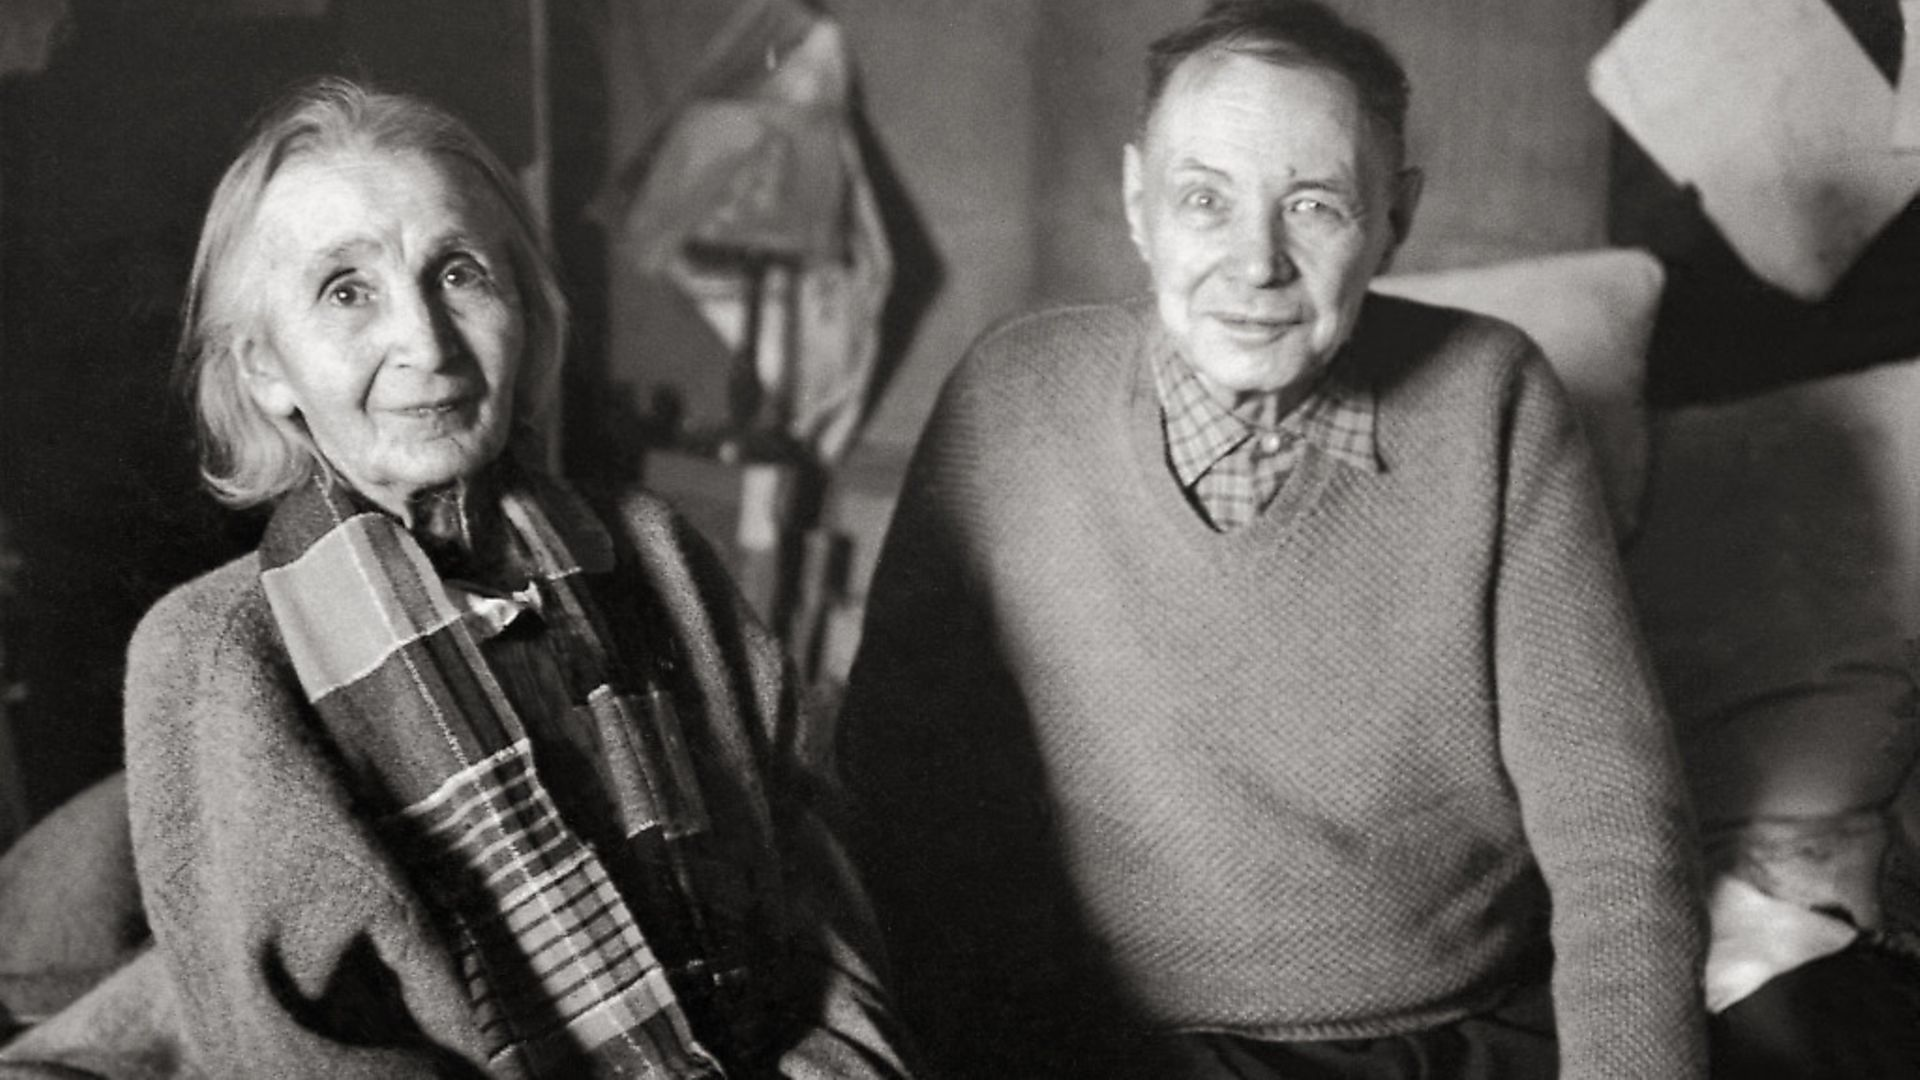 UNSPECIFIED - JANUARY 01:  Painters Mikhail Larionov and Natalya Goncharova. Photography. 1956.  (Photo by Imagno/Getty Images) [Das Malerehepaar Michail Larionow und Natalja Gontscharowa. Photographie, 1956.] - Credit: Getty Images